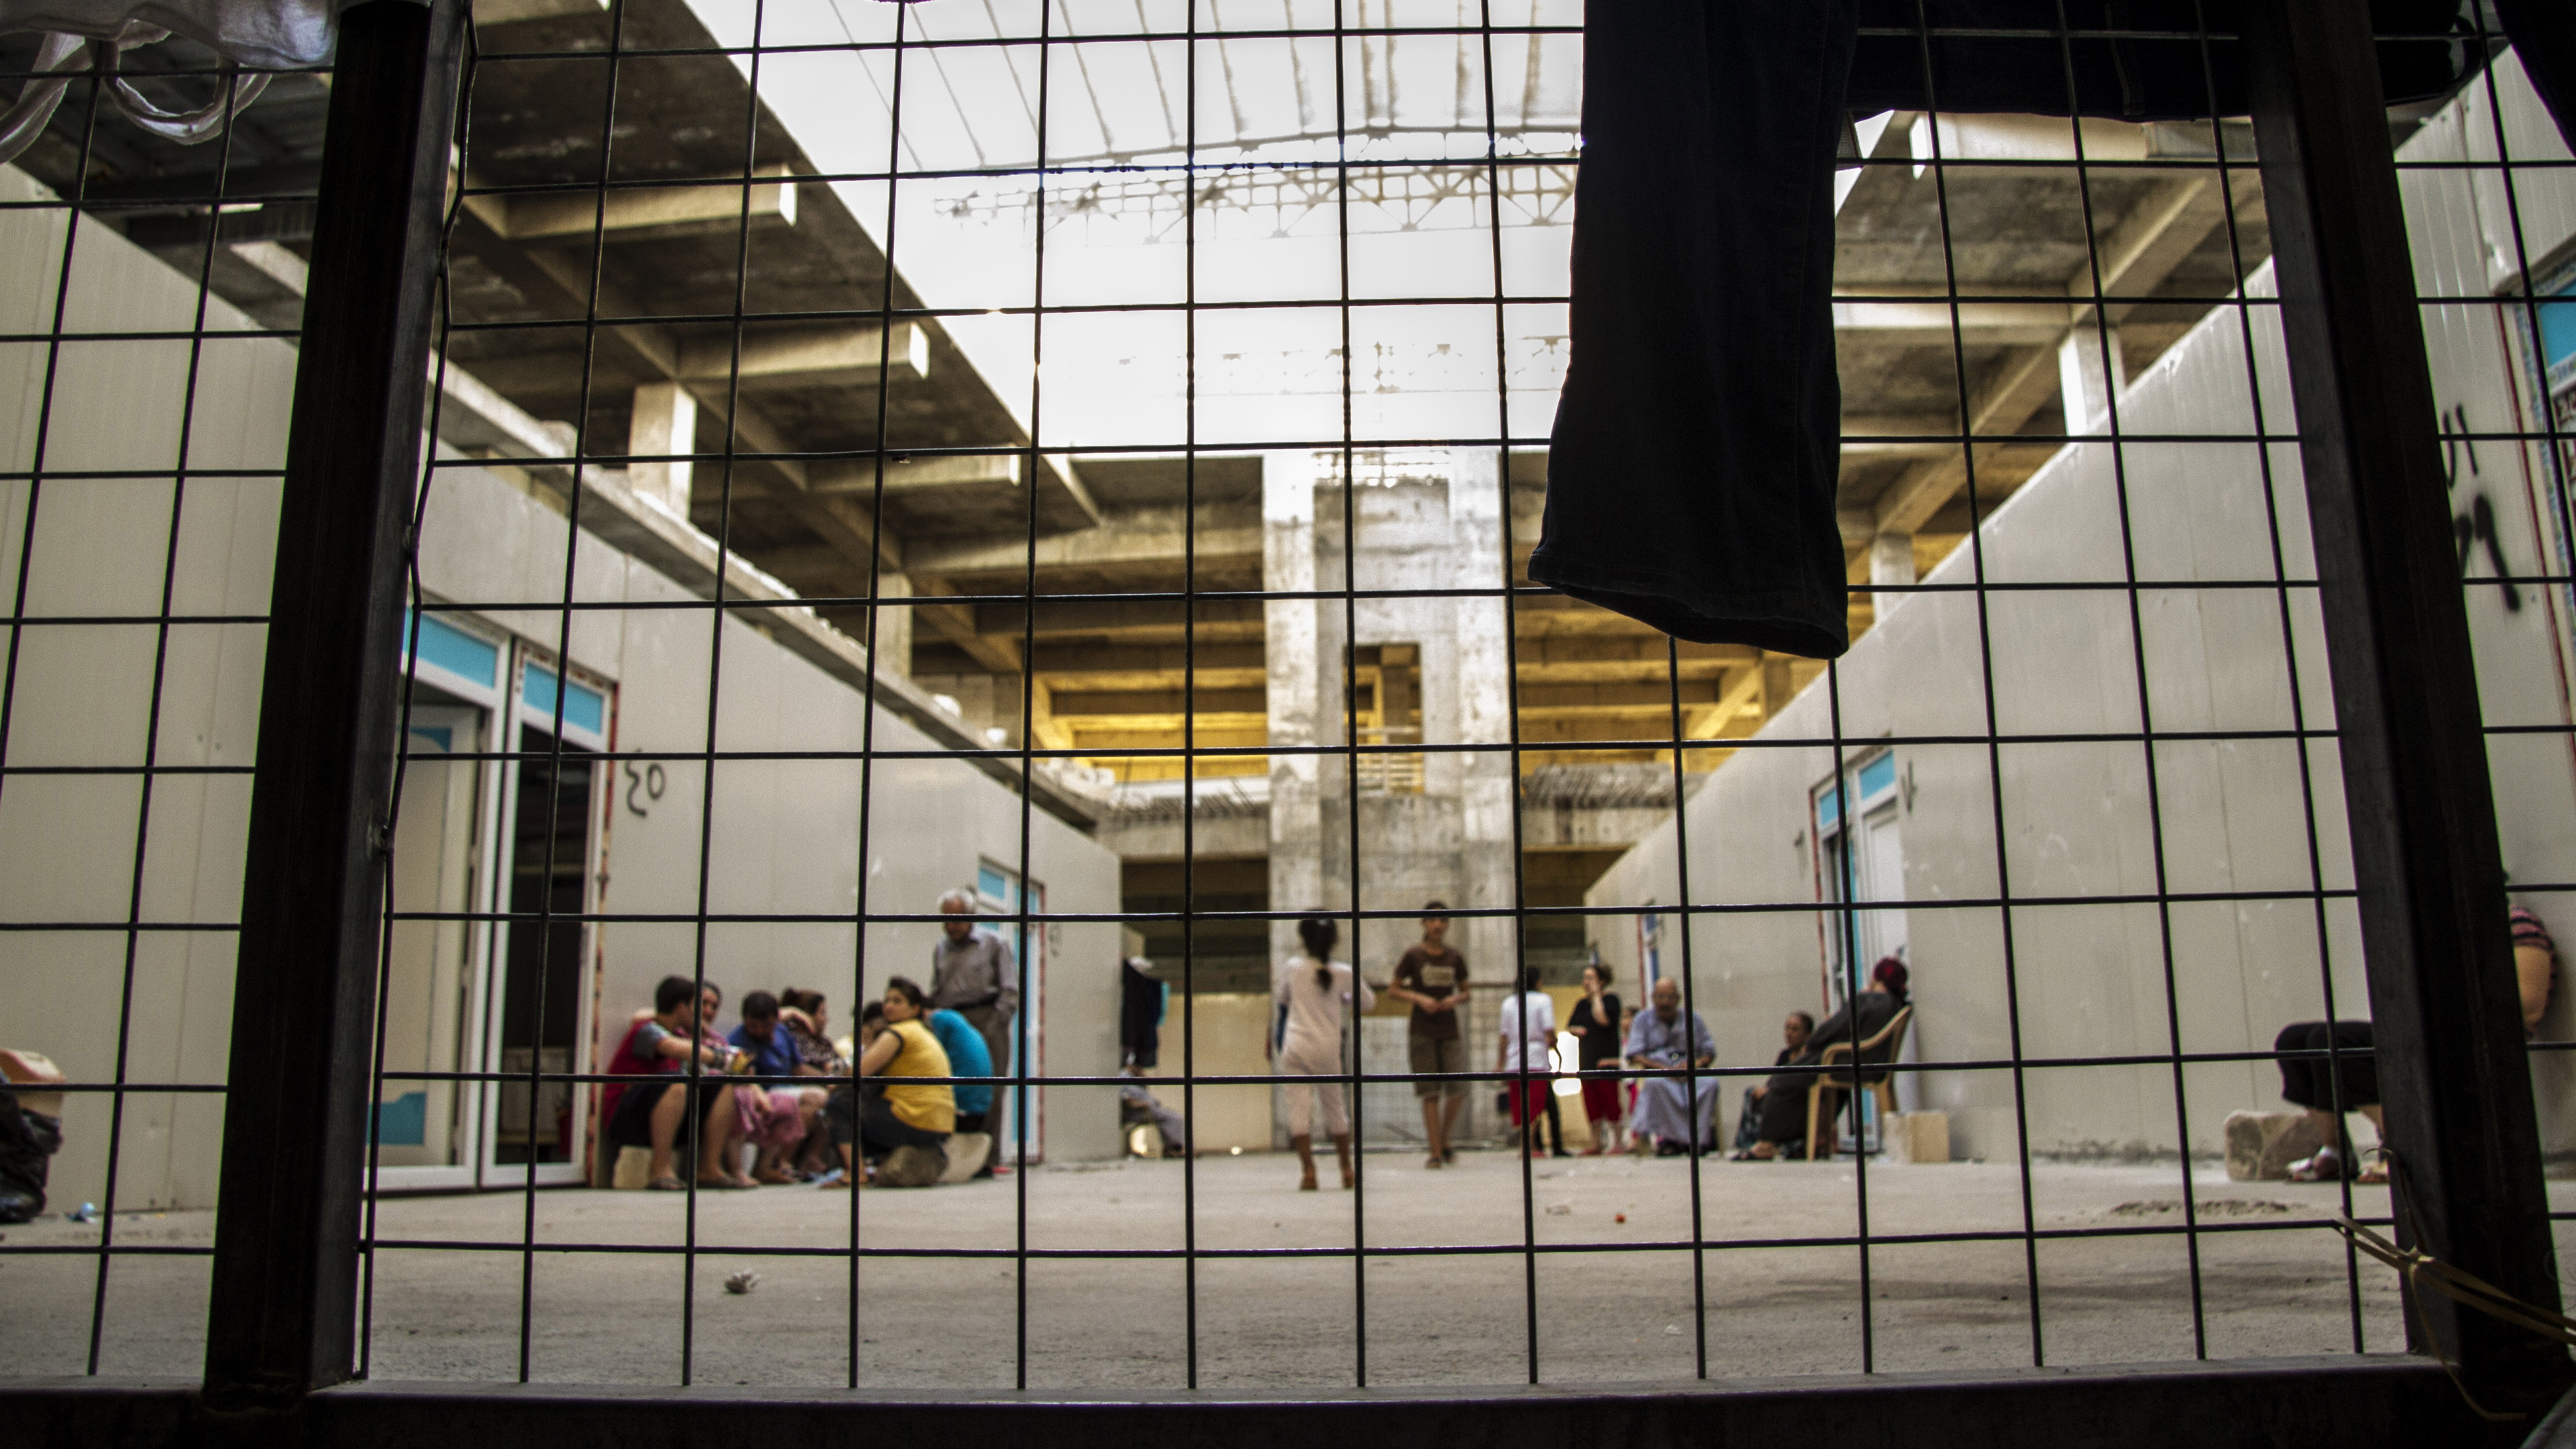 The main atrium of this would-be mall is now home to hundreds of Iraqis from villages outside Mosul. Here the concrete floors and walls give families more protection than the displaced families living in tents in a public park just across the street.